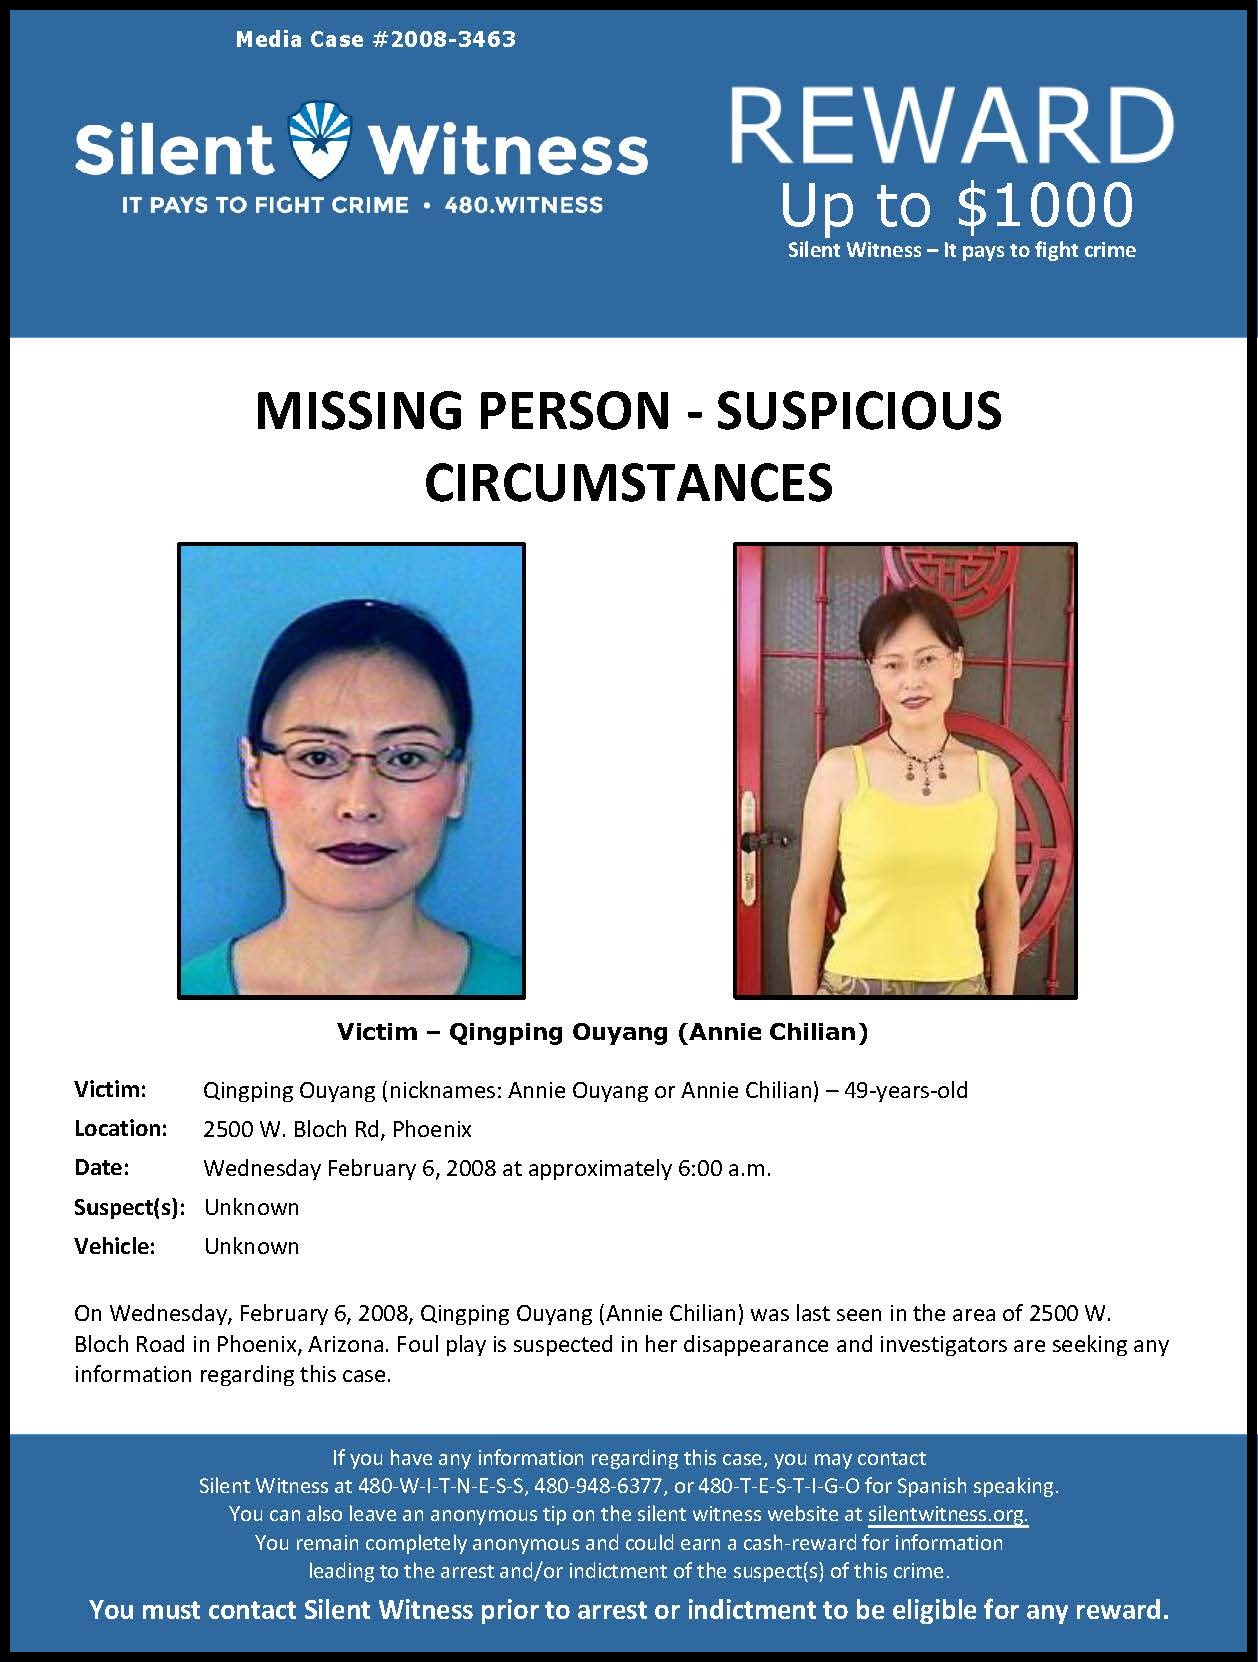 Missing Person – Suspicious Circumstances / Qingping Ouyang (Annie Chilian) / 2500 W. Bloch Rd., Phoenix